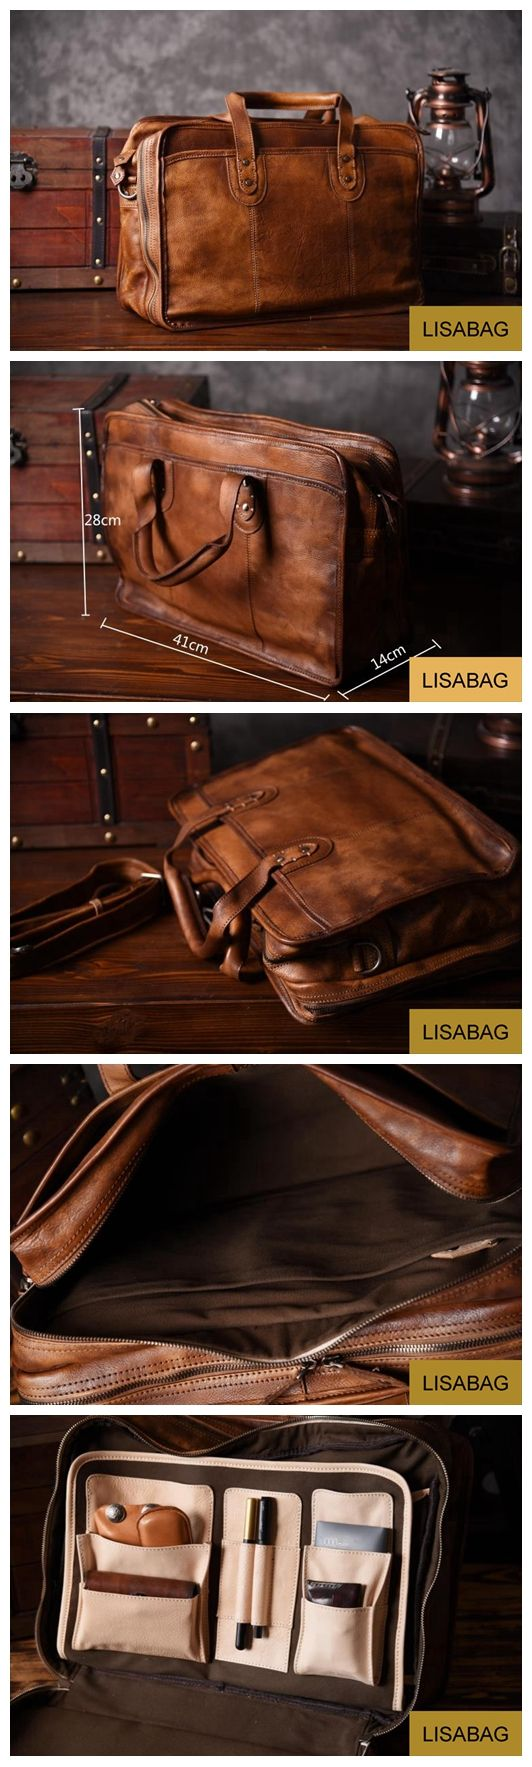 Handmade Leather Briefcase Men's Messenger Bag 15'' Laptop Bag Travel Bag Men's Fashion Business Bag Leather Duffle Bag NZ01 Overview: Design: Vintage Leather Men Briefcase In Stock: 3-5 days For Maki